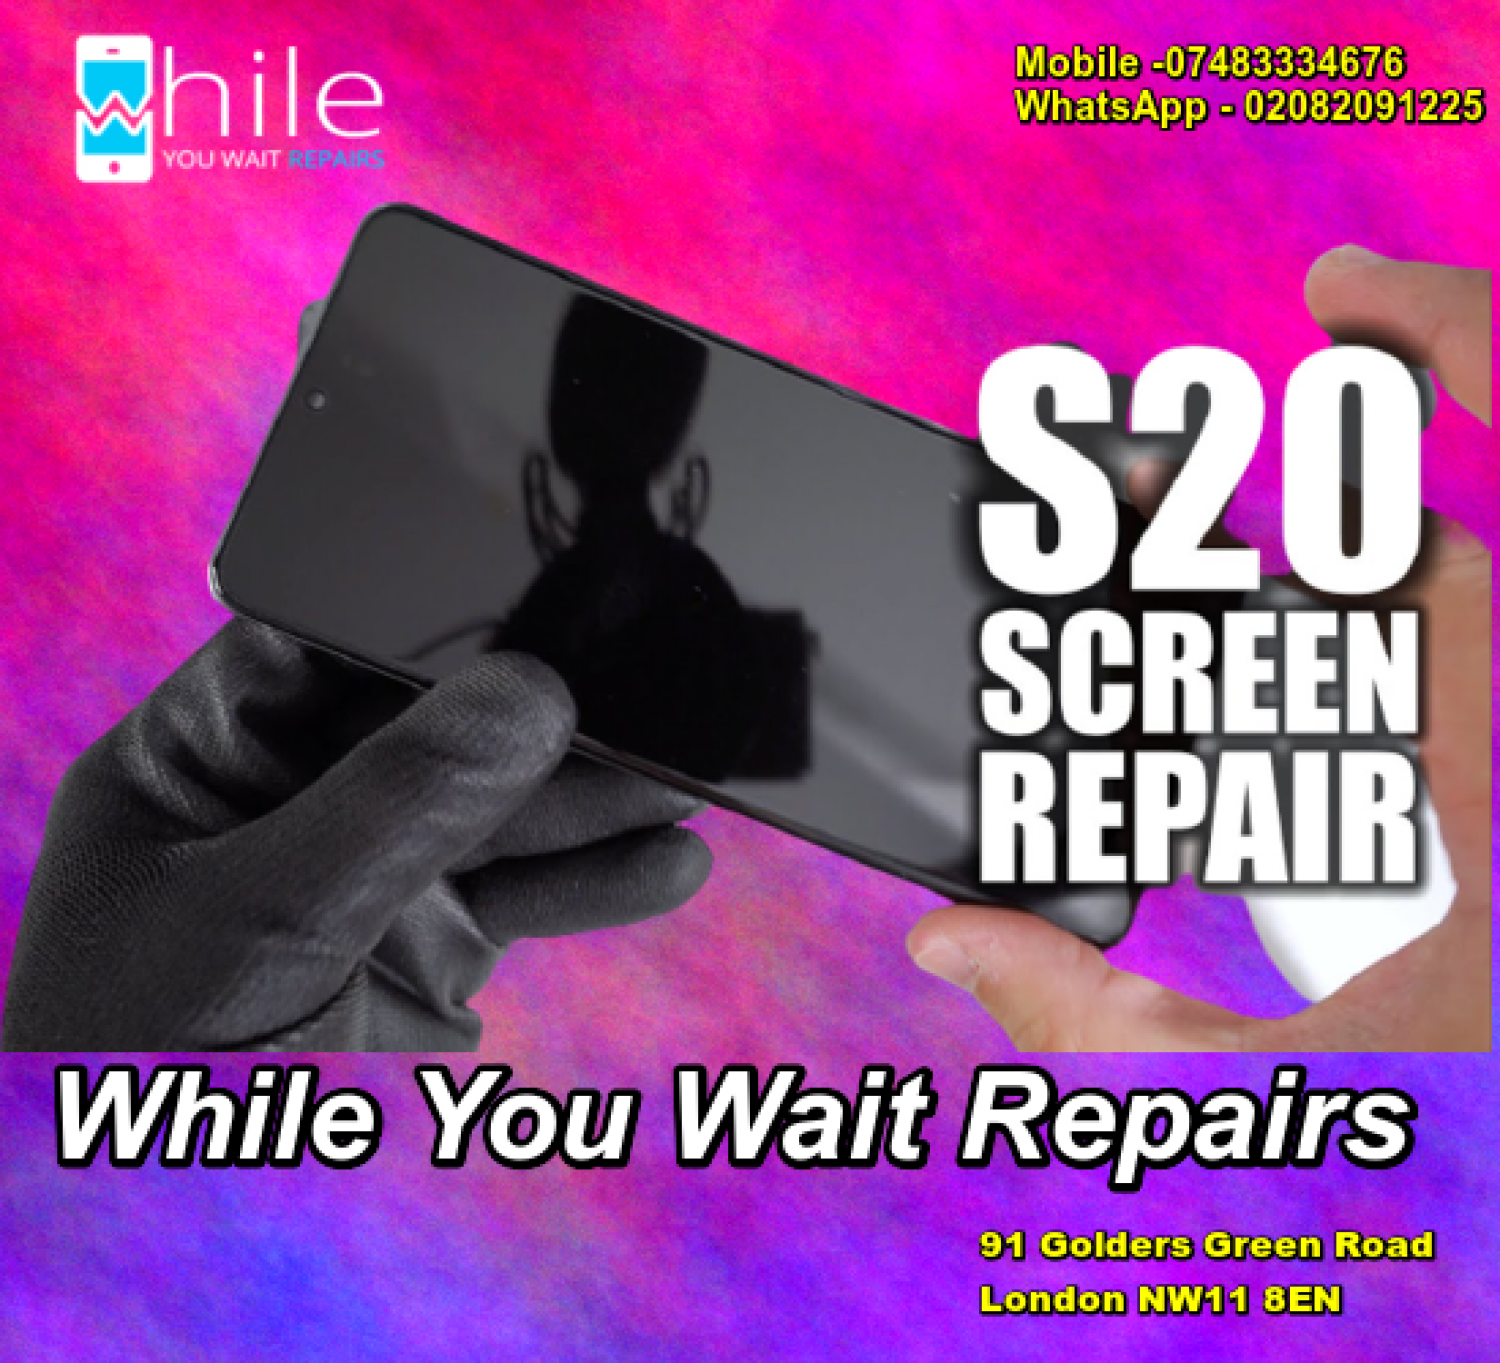 Same Day Galaxy S20 Screen repair Service London Infographic